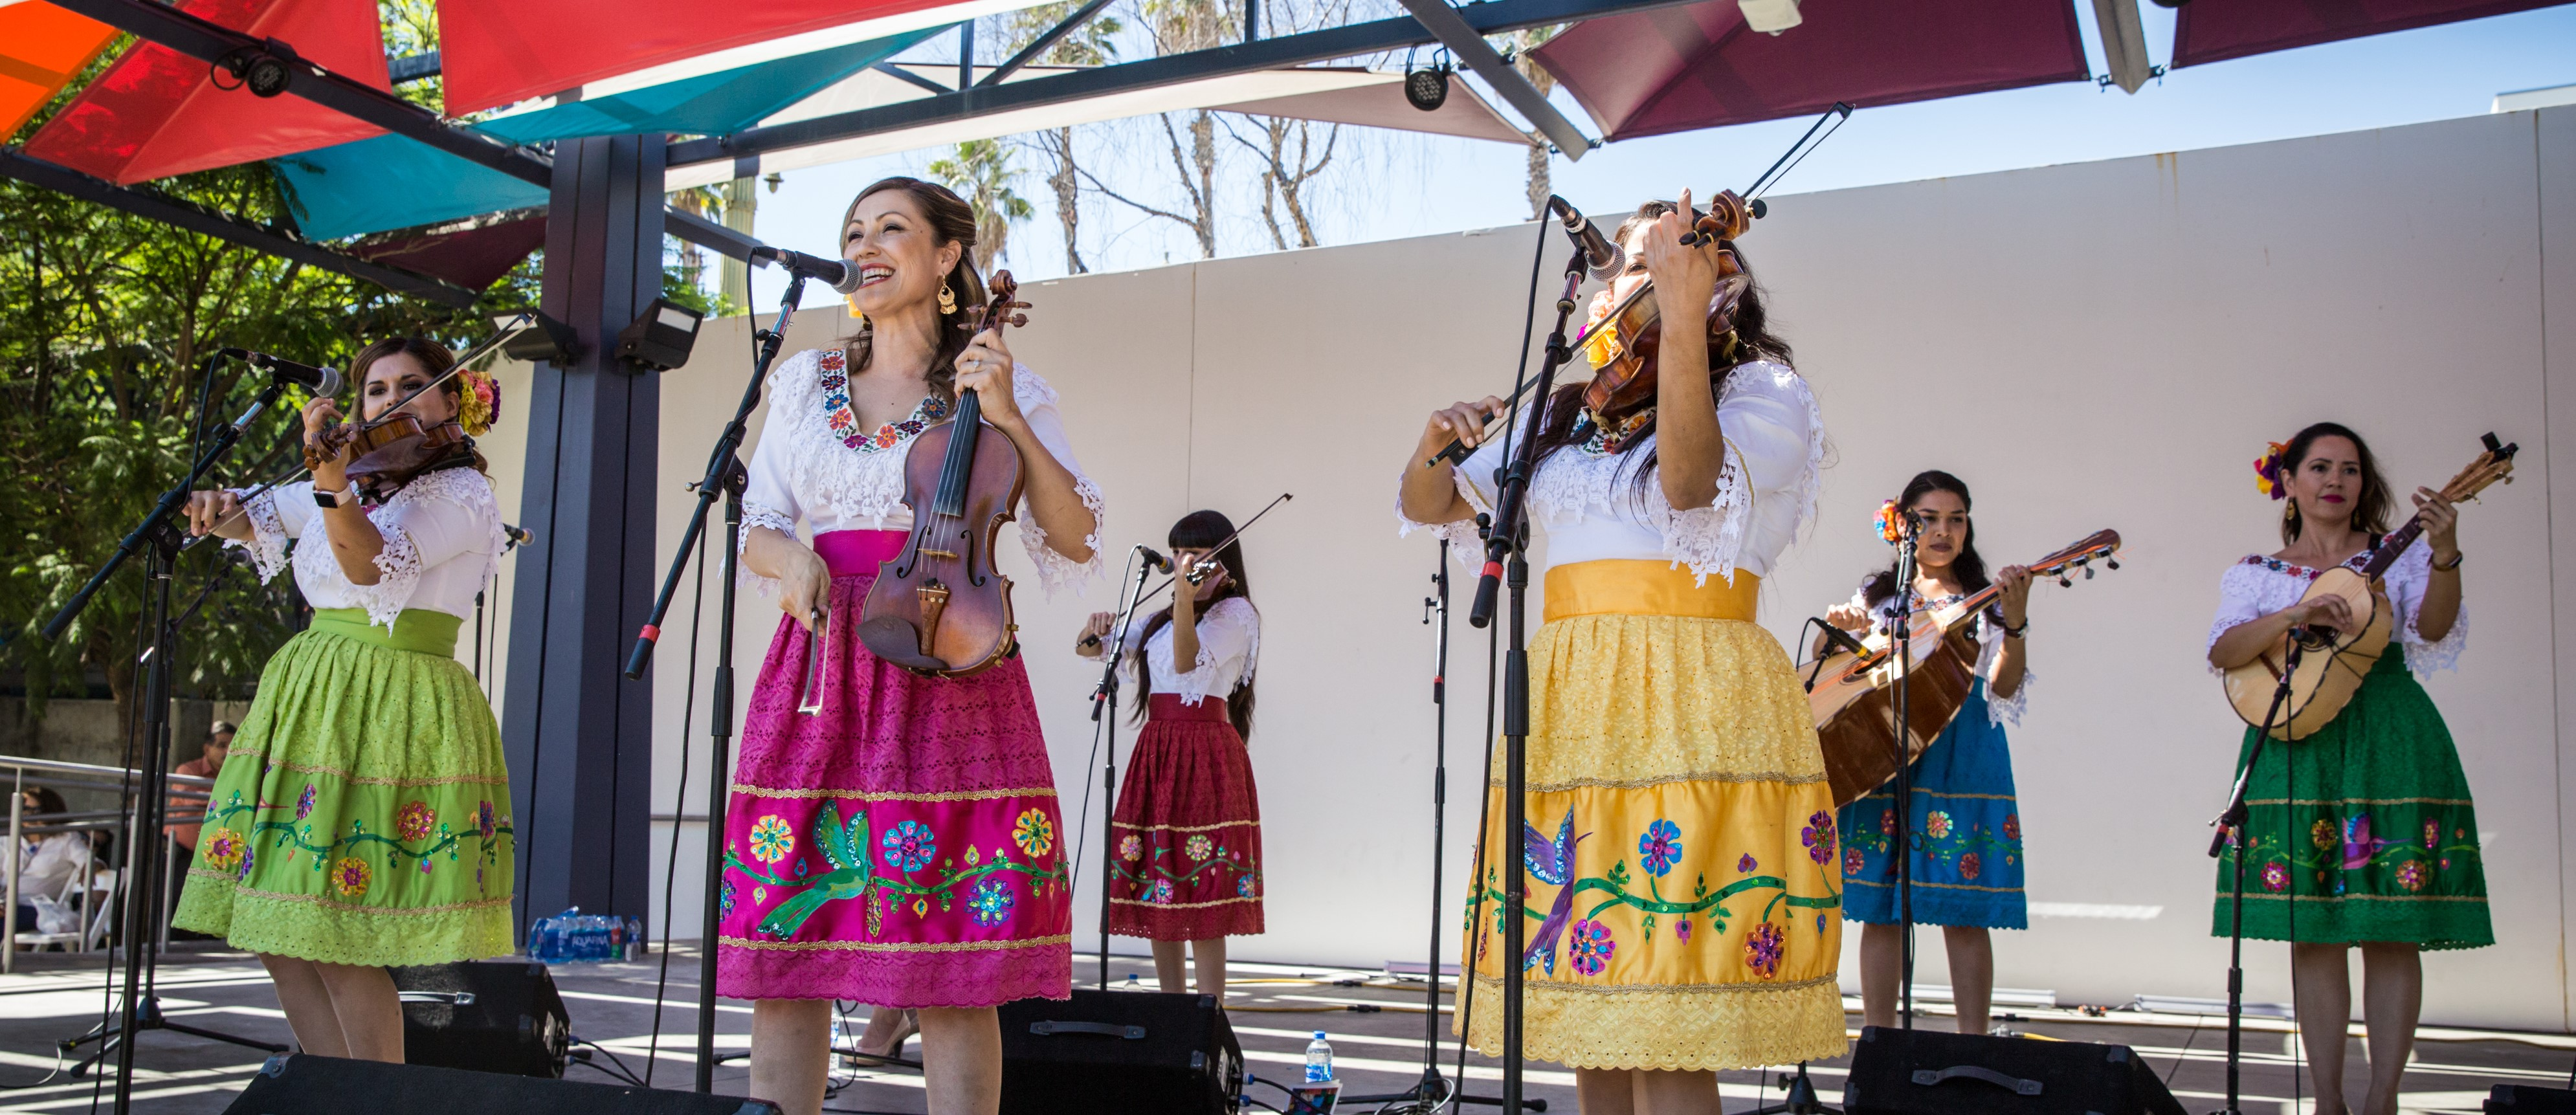 CELEBRATE HISPANIC HERITAGE MONTH WITH AARP IN LOS ANGELES!